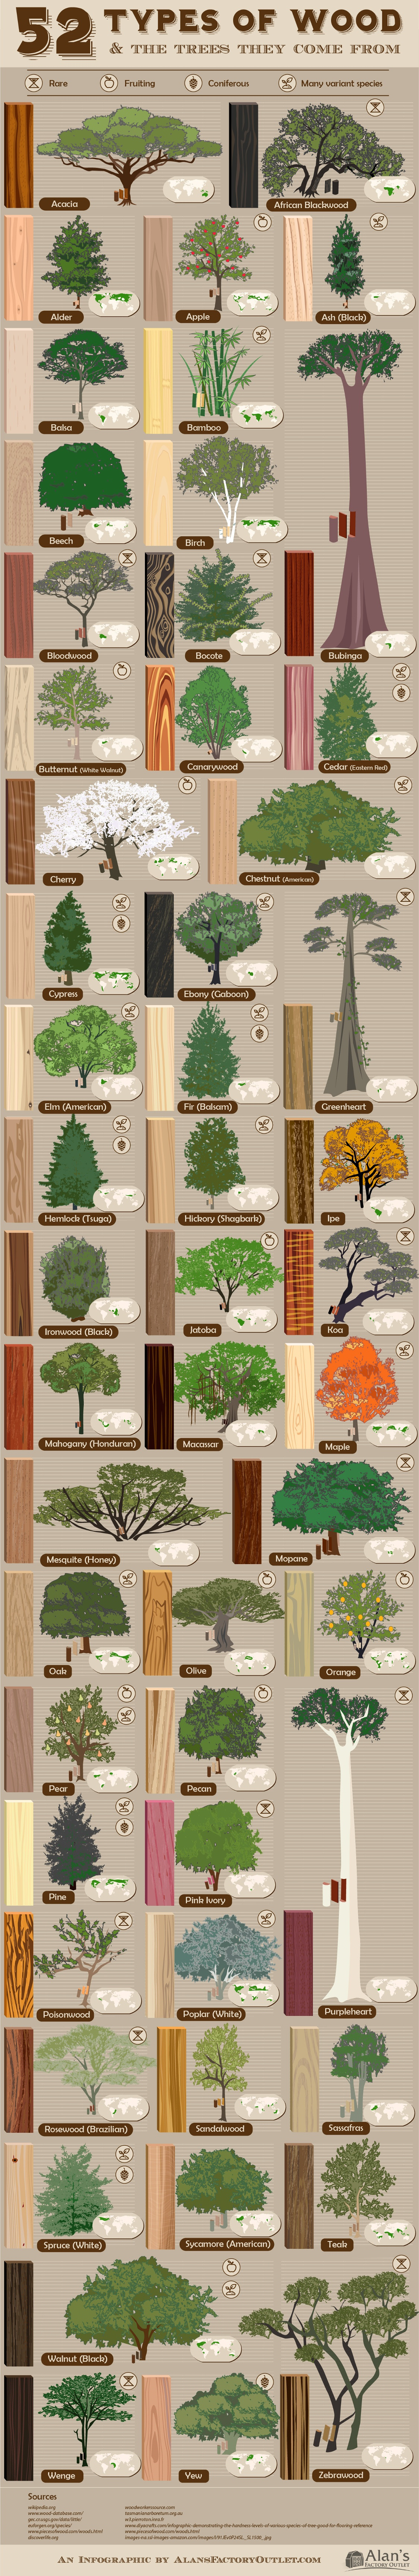 Glossary of Wood Types and the Trees They Originate From - Infographic